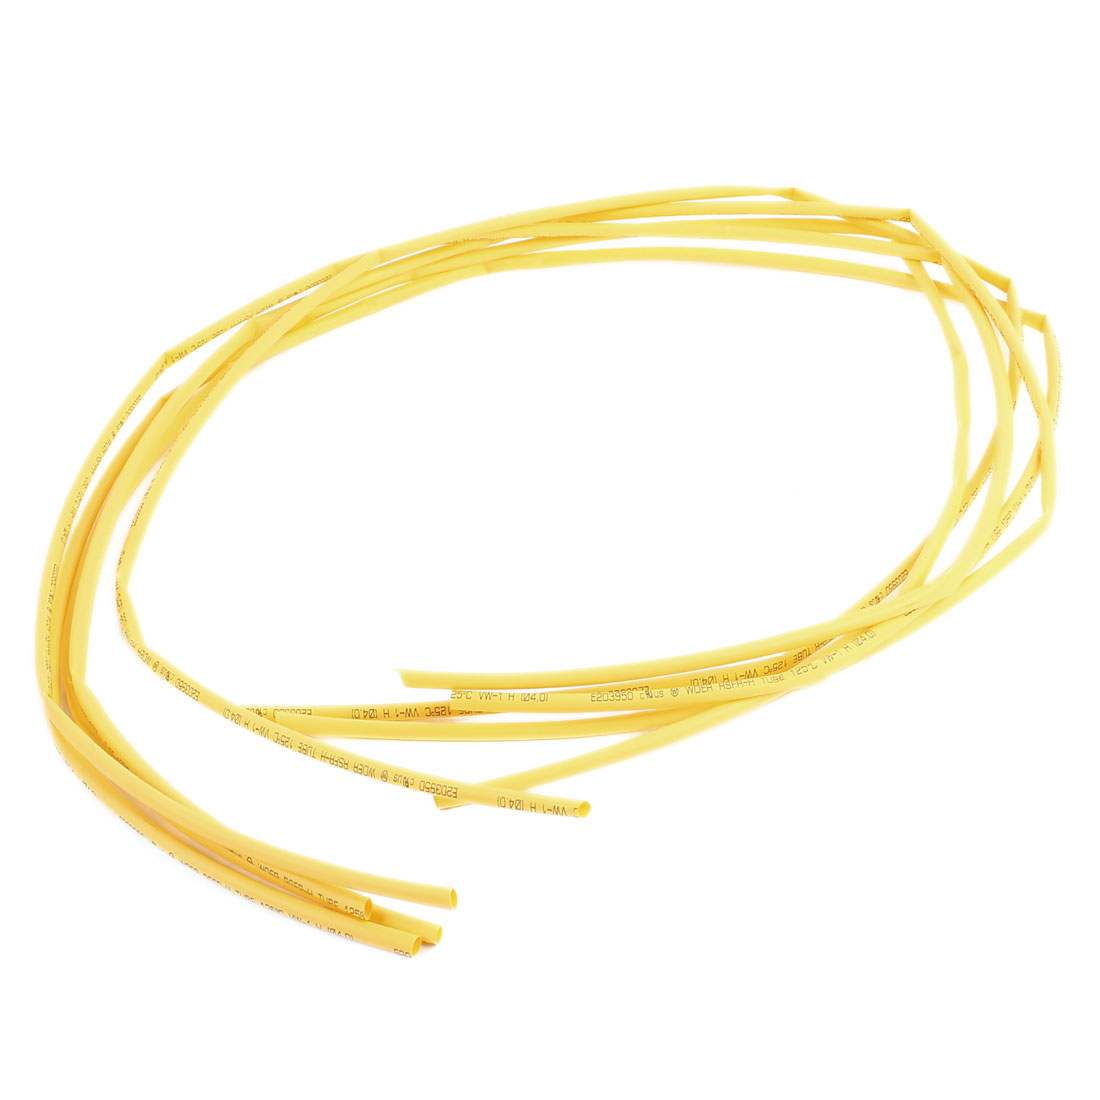 1M 4mm Dia Polyolefin Heat Shrinking Shrinkable Tubing Tubes Yellow 5 Pcs